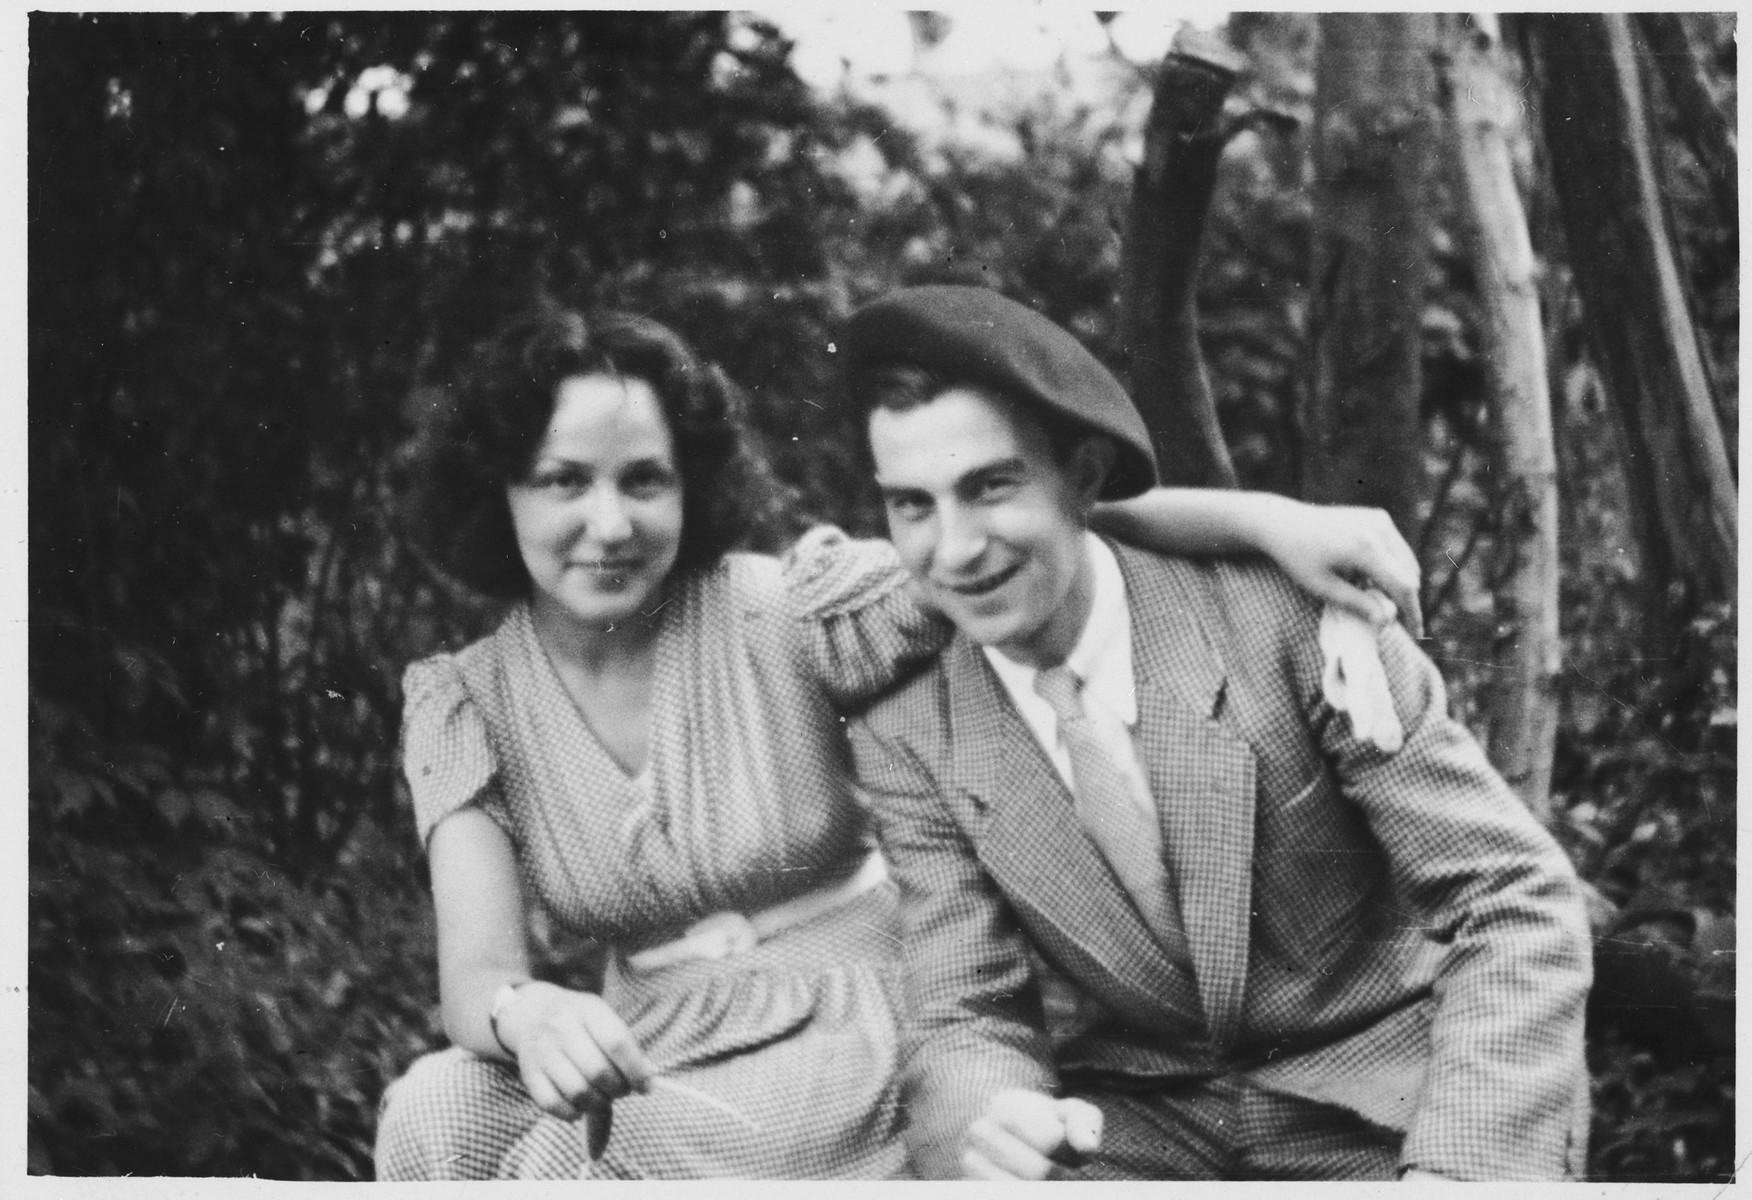 A young Jewish couple who lent assistance to the French Jewish resistance group Armée Juive, pose in the forest.  Pictured are Rabbi Paul Roitman with his fiancee Lea.